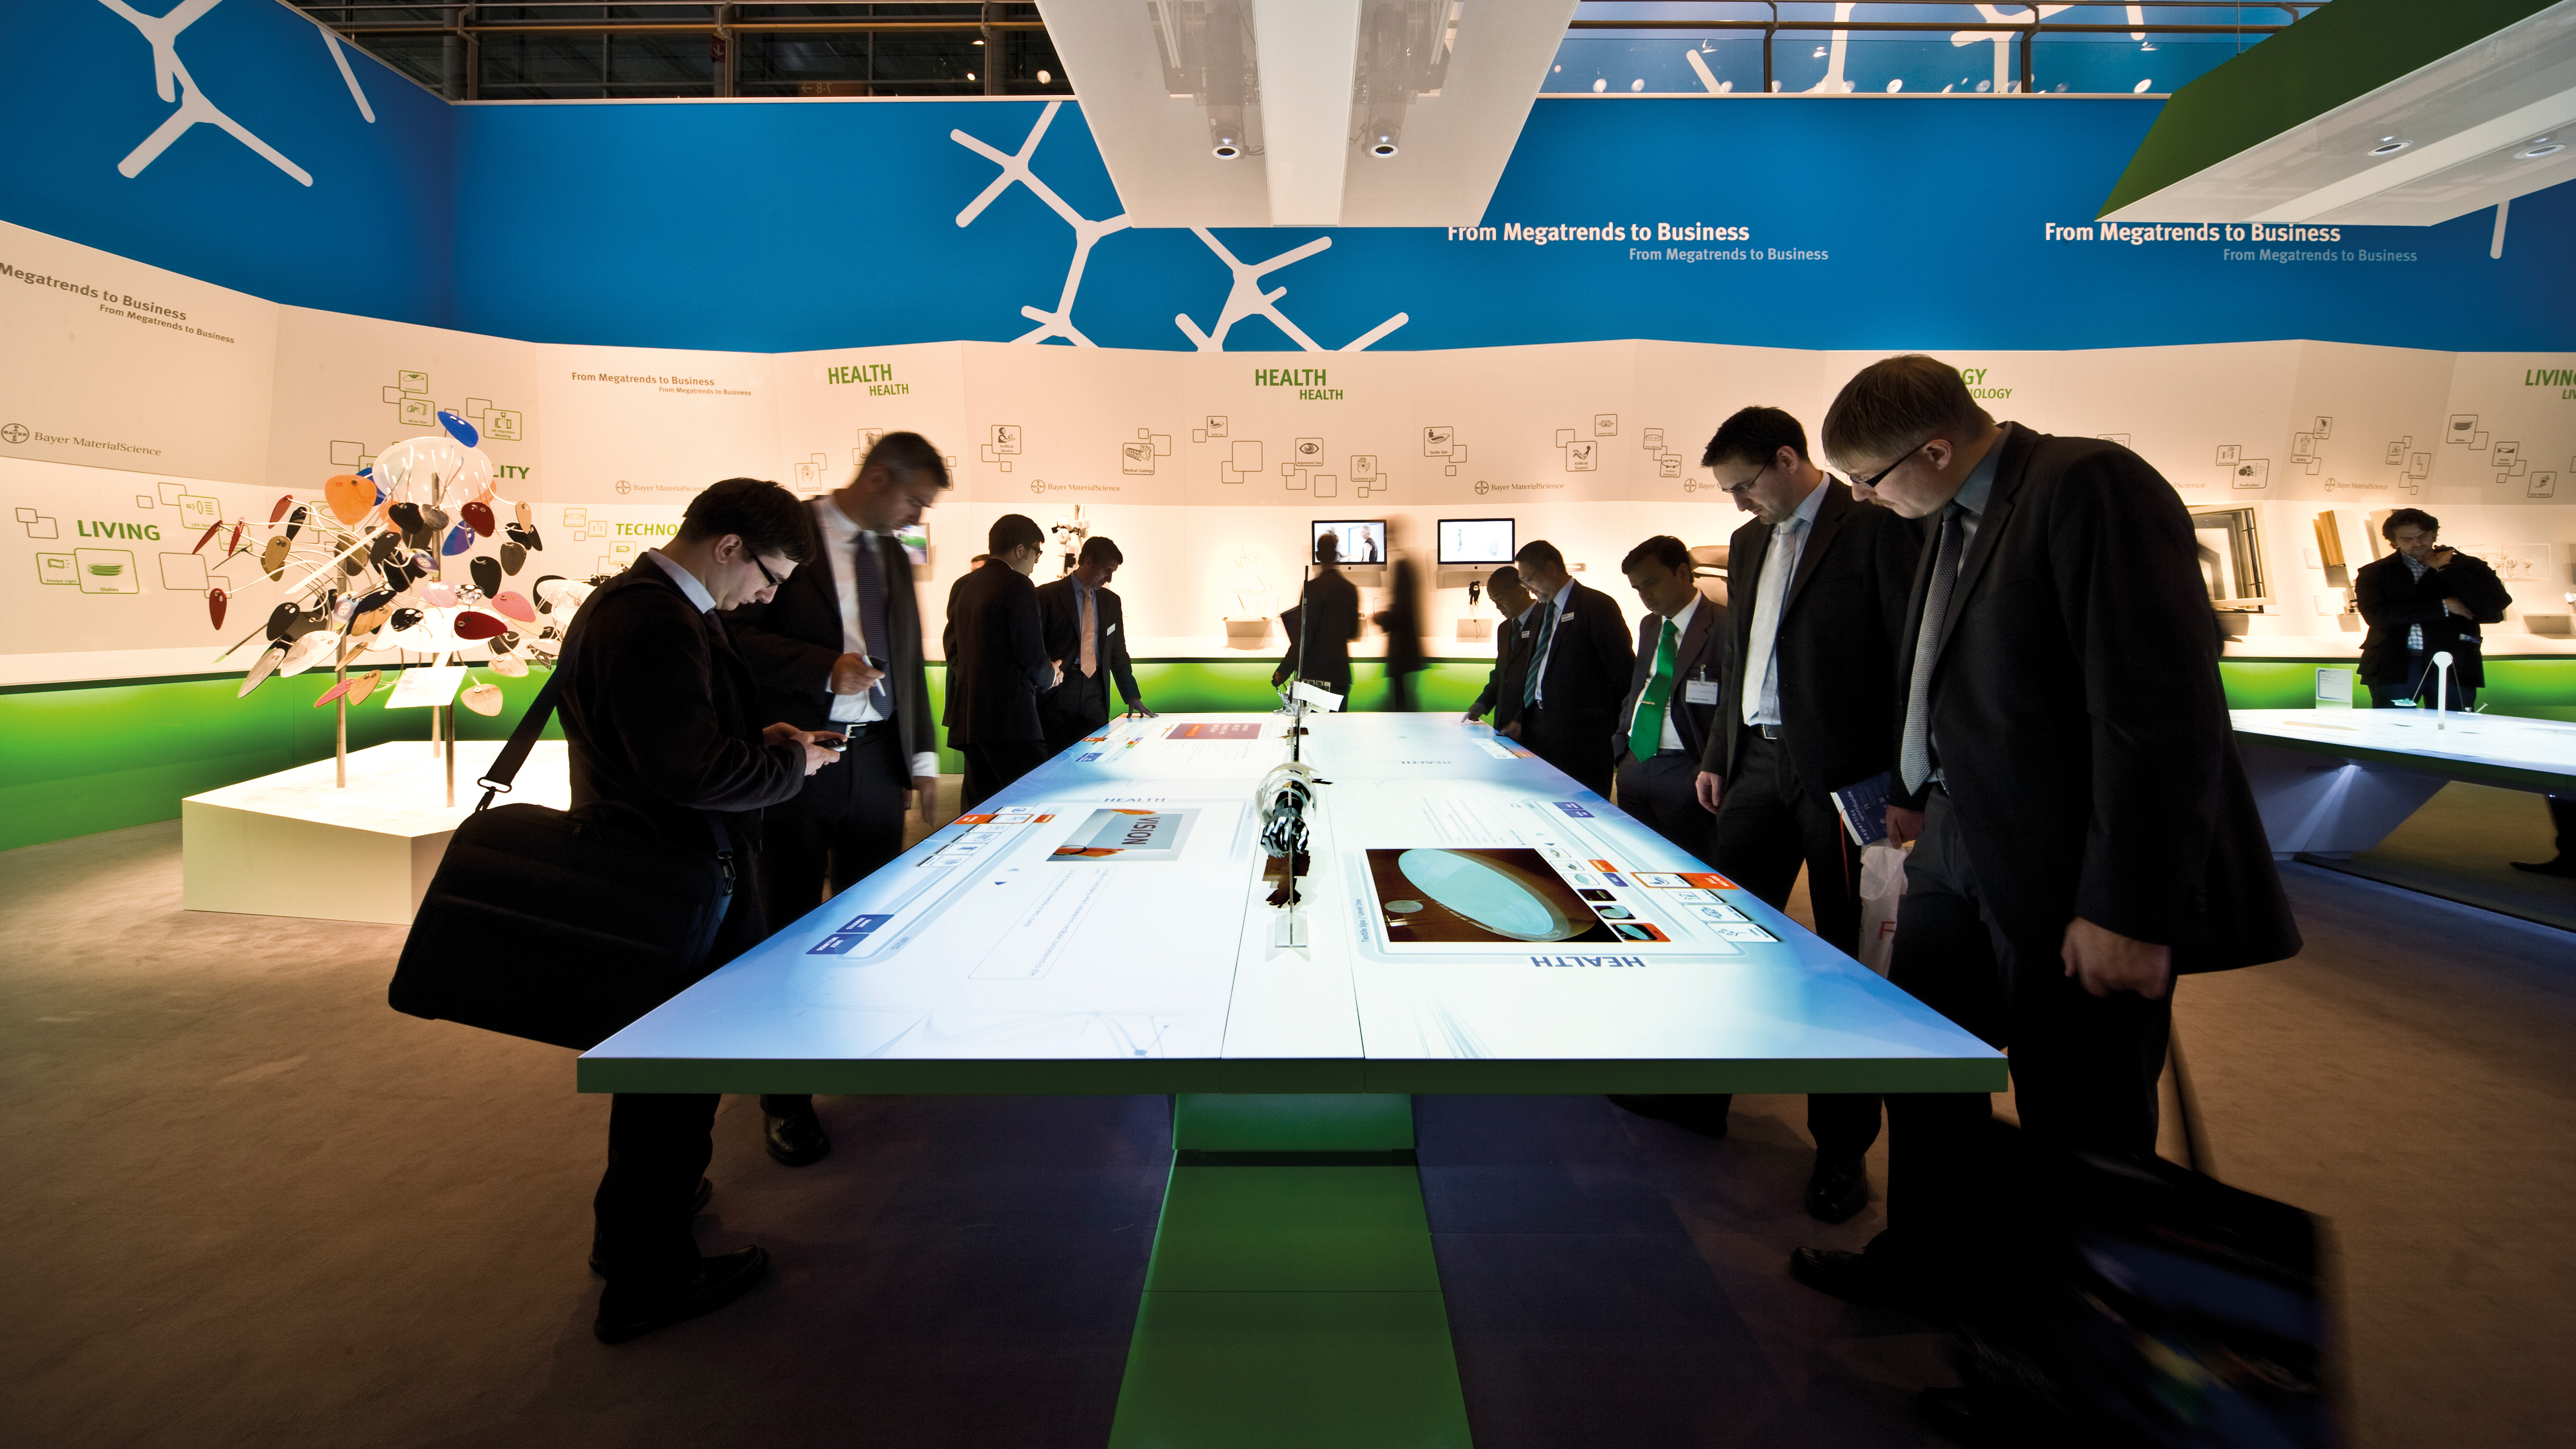 Trade fair visitors use interactive table